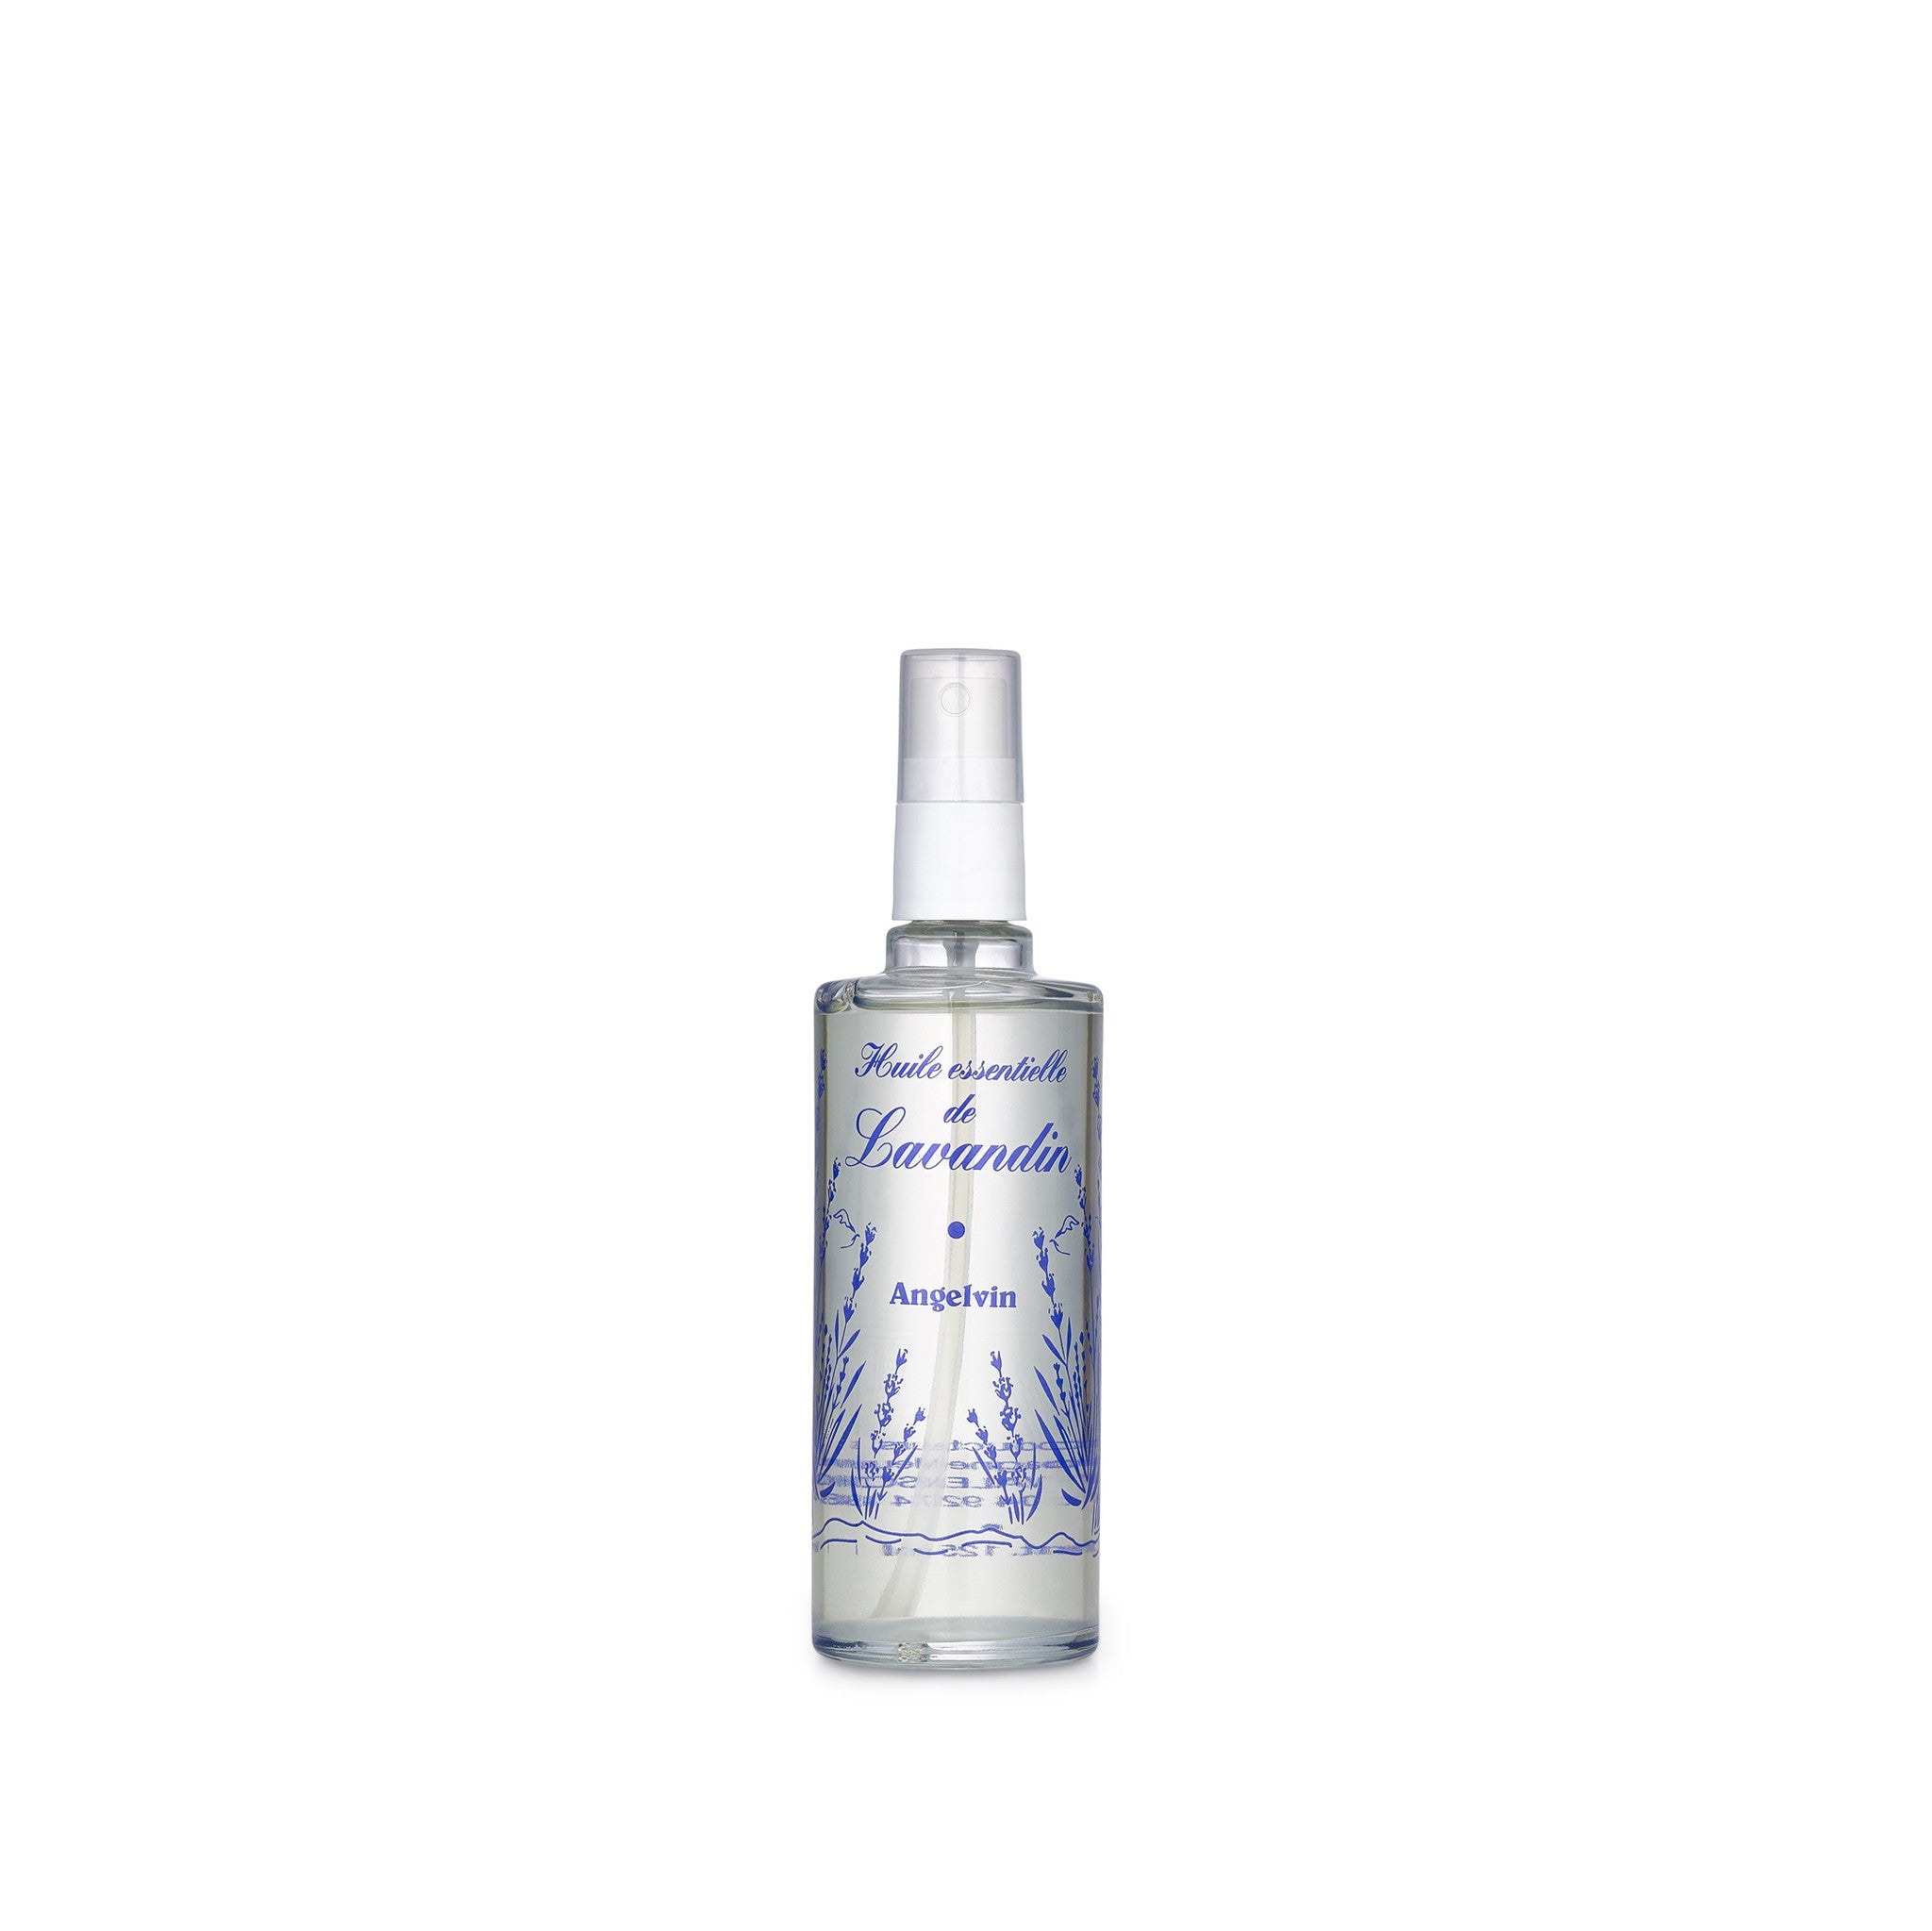 Lavandin Essence Spray, 125ml